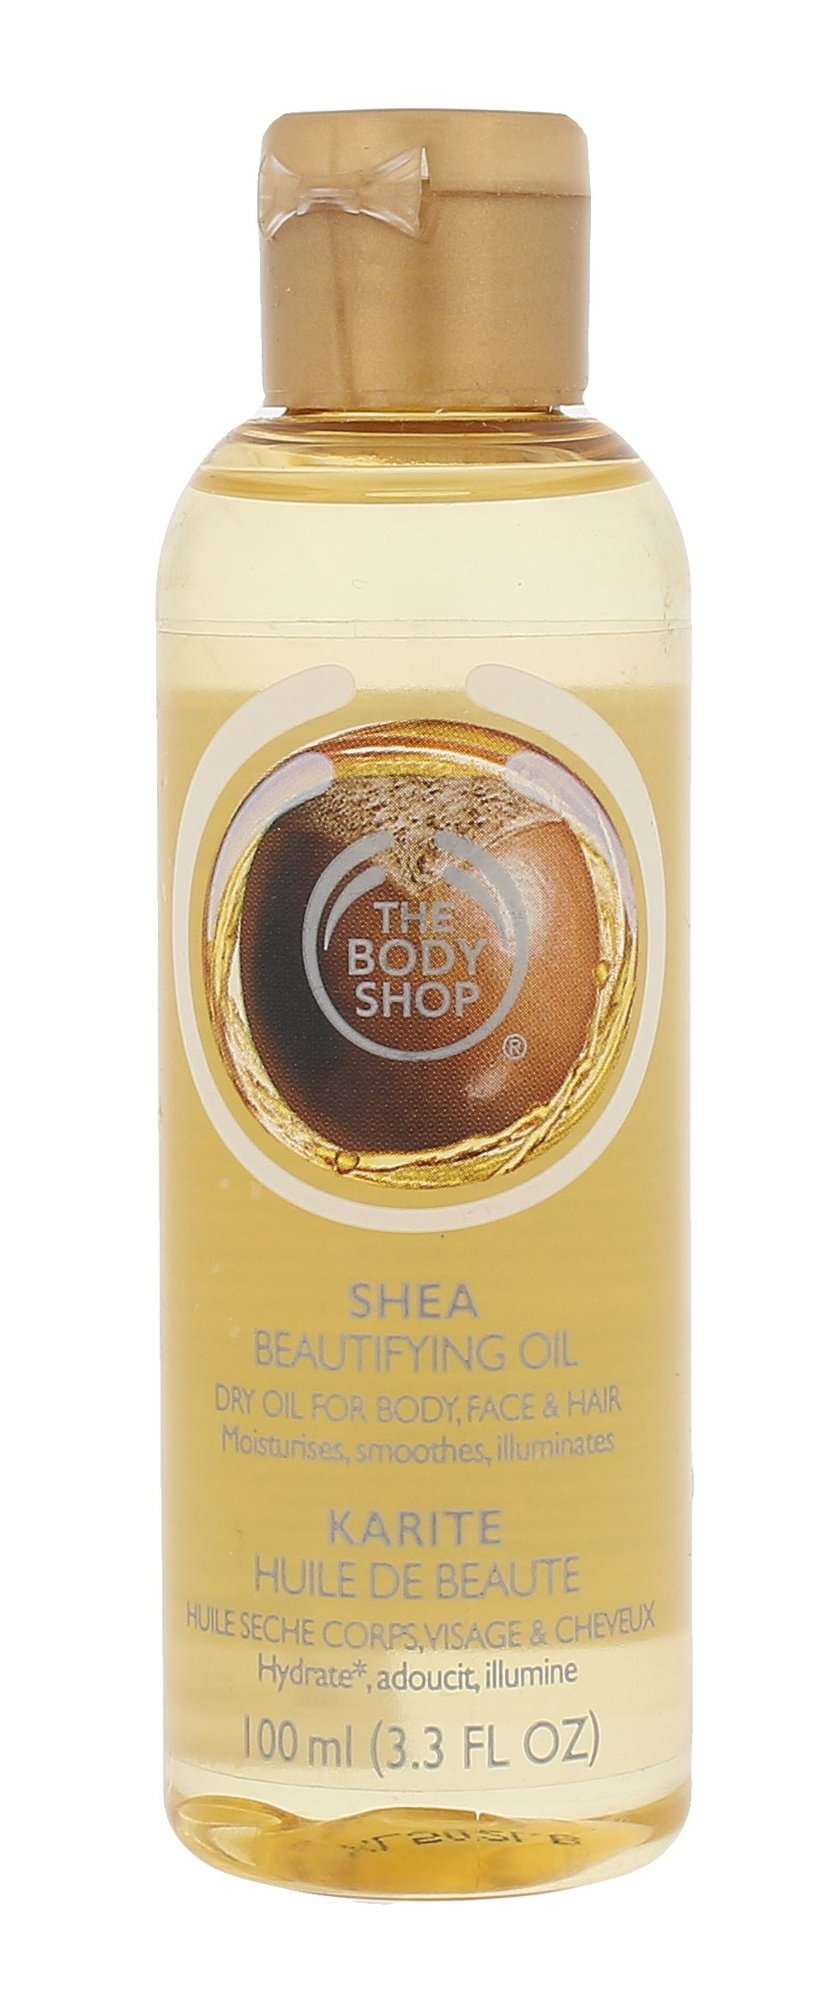 The Body Shop Shea Cosmetic 100ml  Beautifying Oil